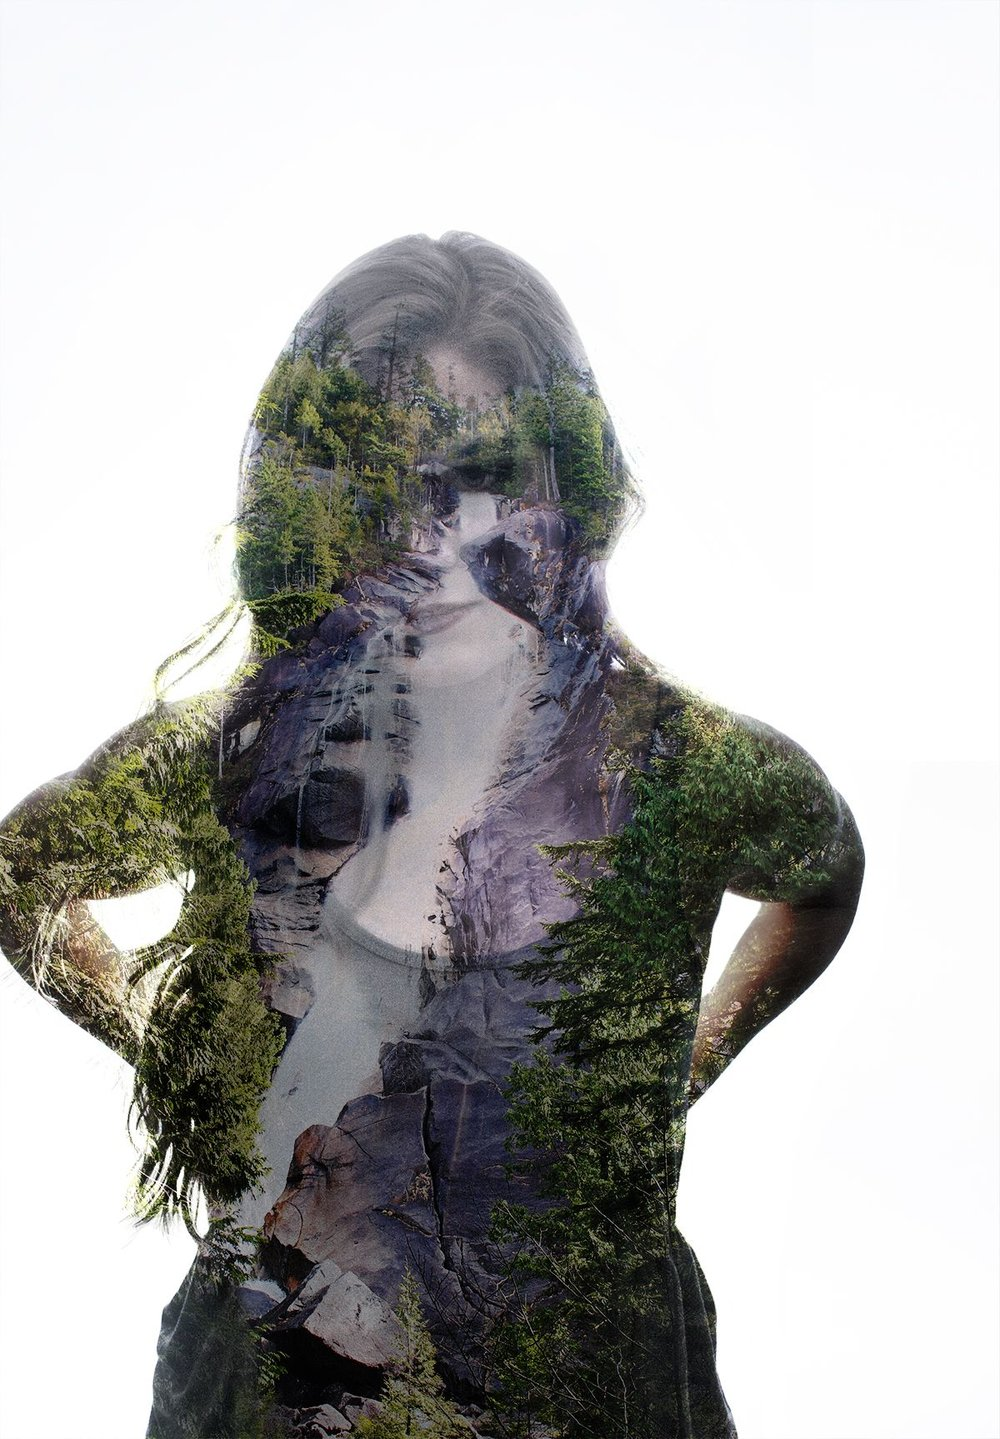 chrissy-MultipleExposure.jpg